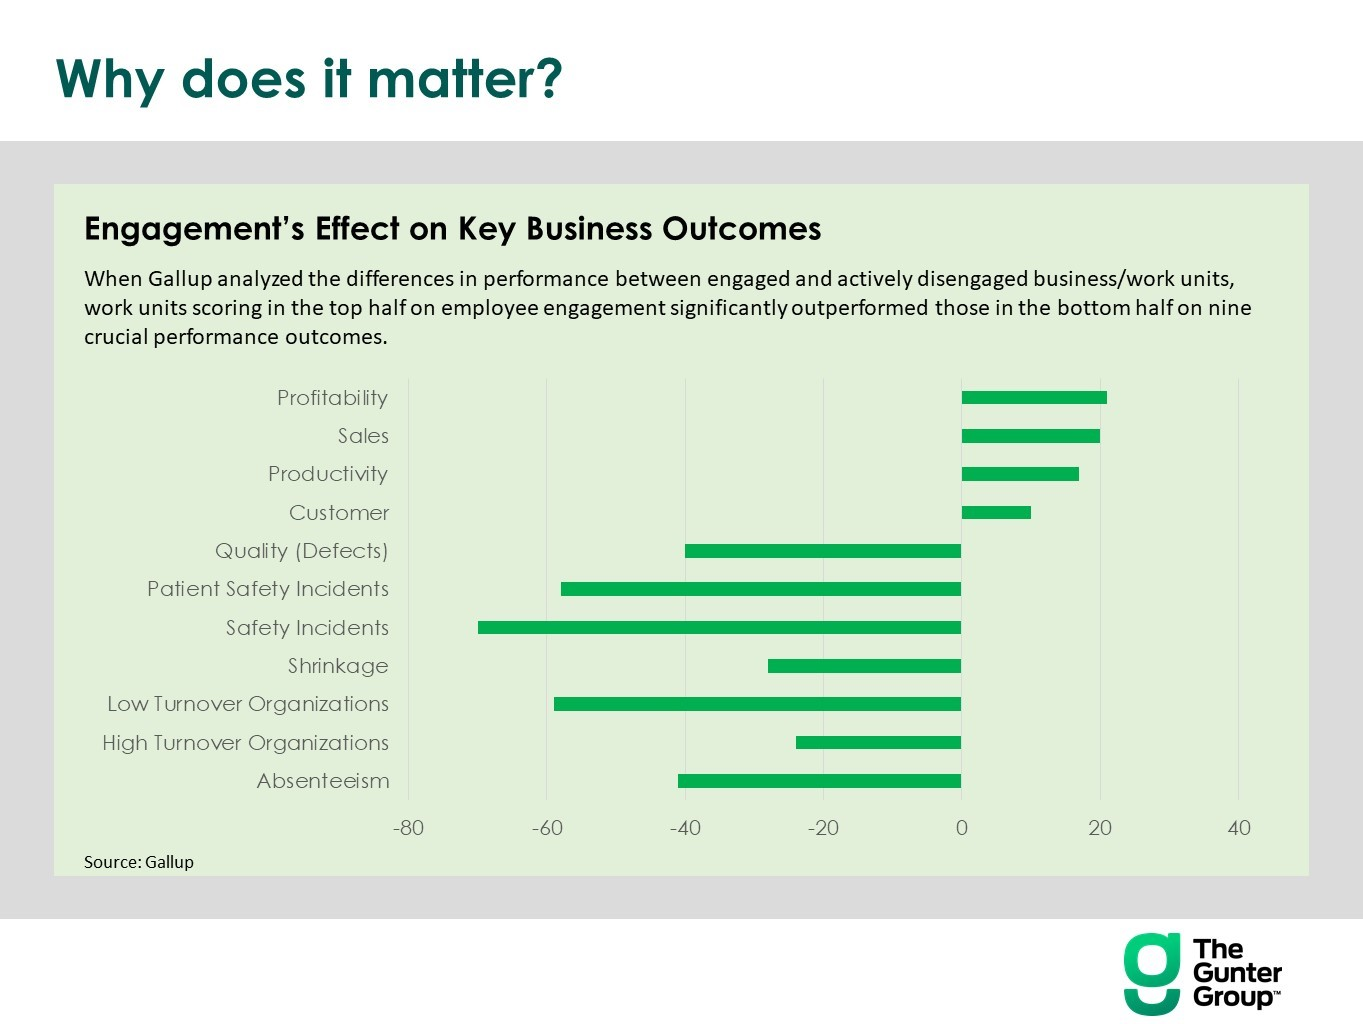 Pic 1 Engagements Effect on Key Business Outcomes